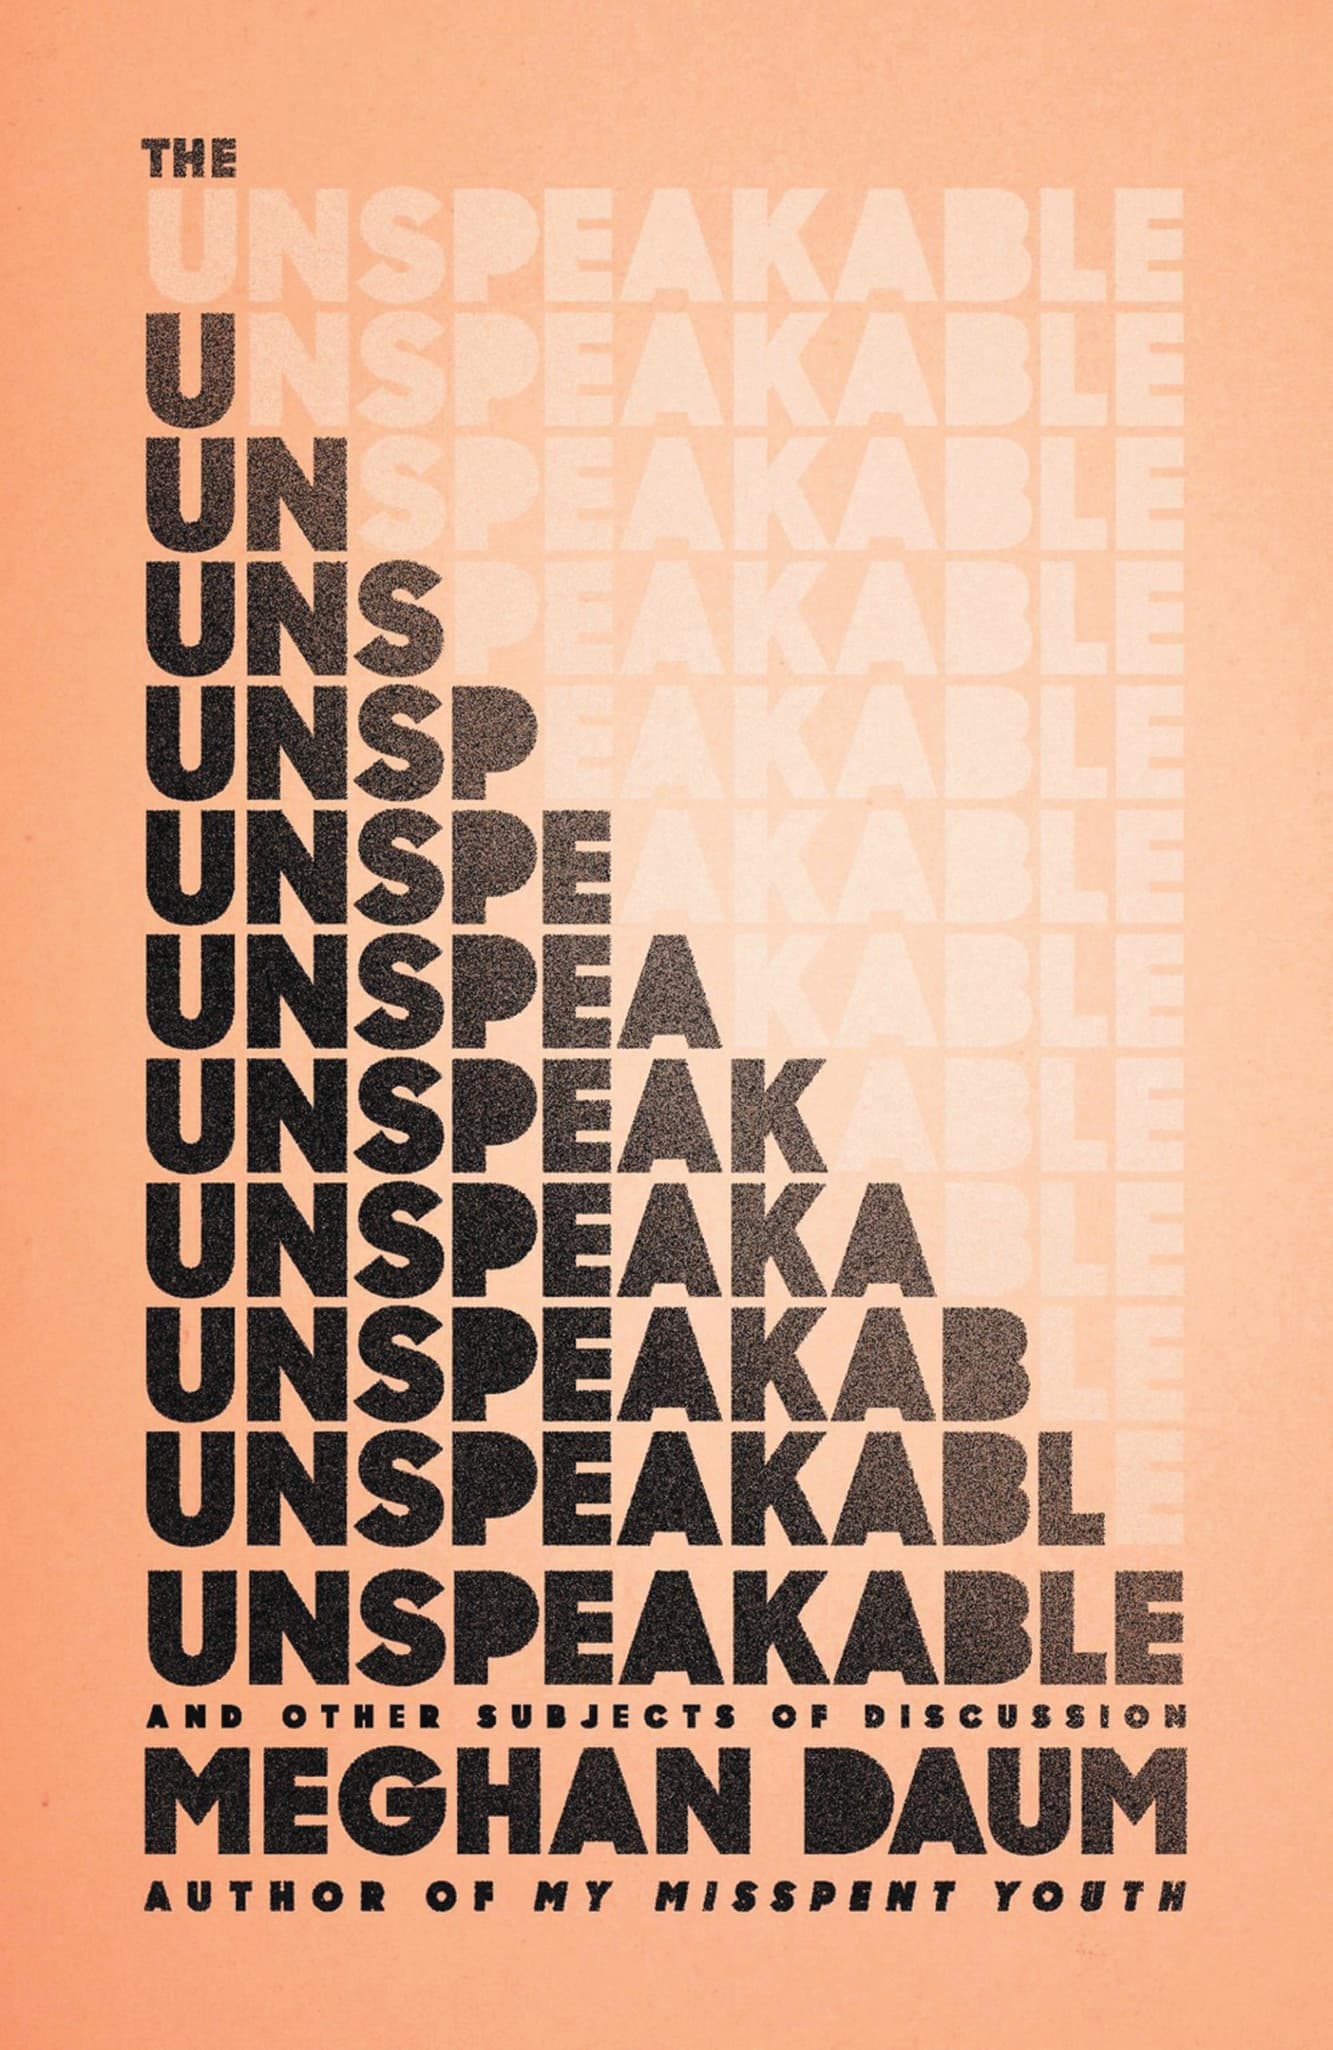 The Unspeakable: And Other Subjects of Discussion  By Meghan Daum